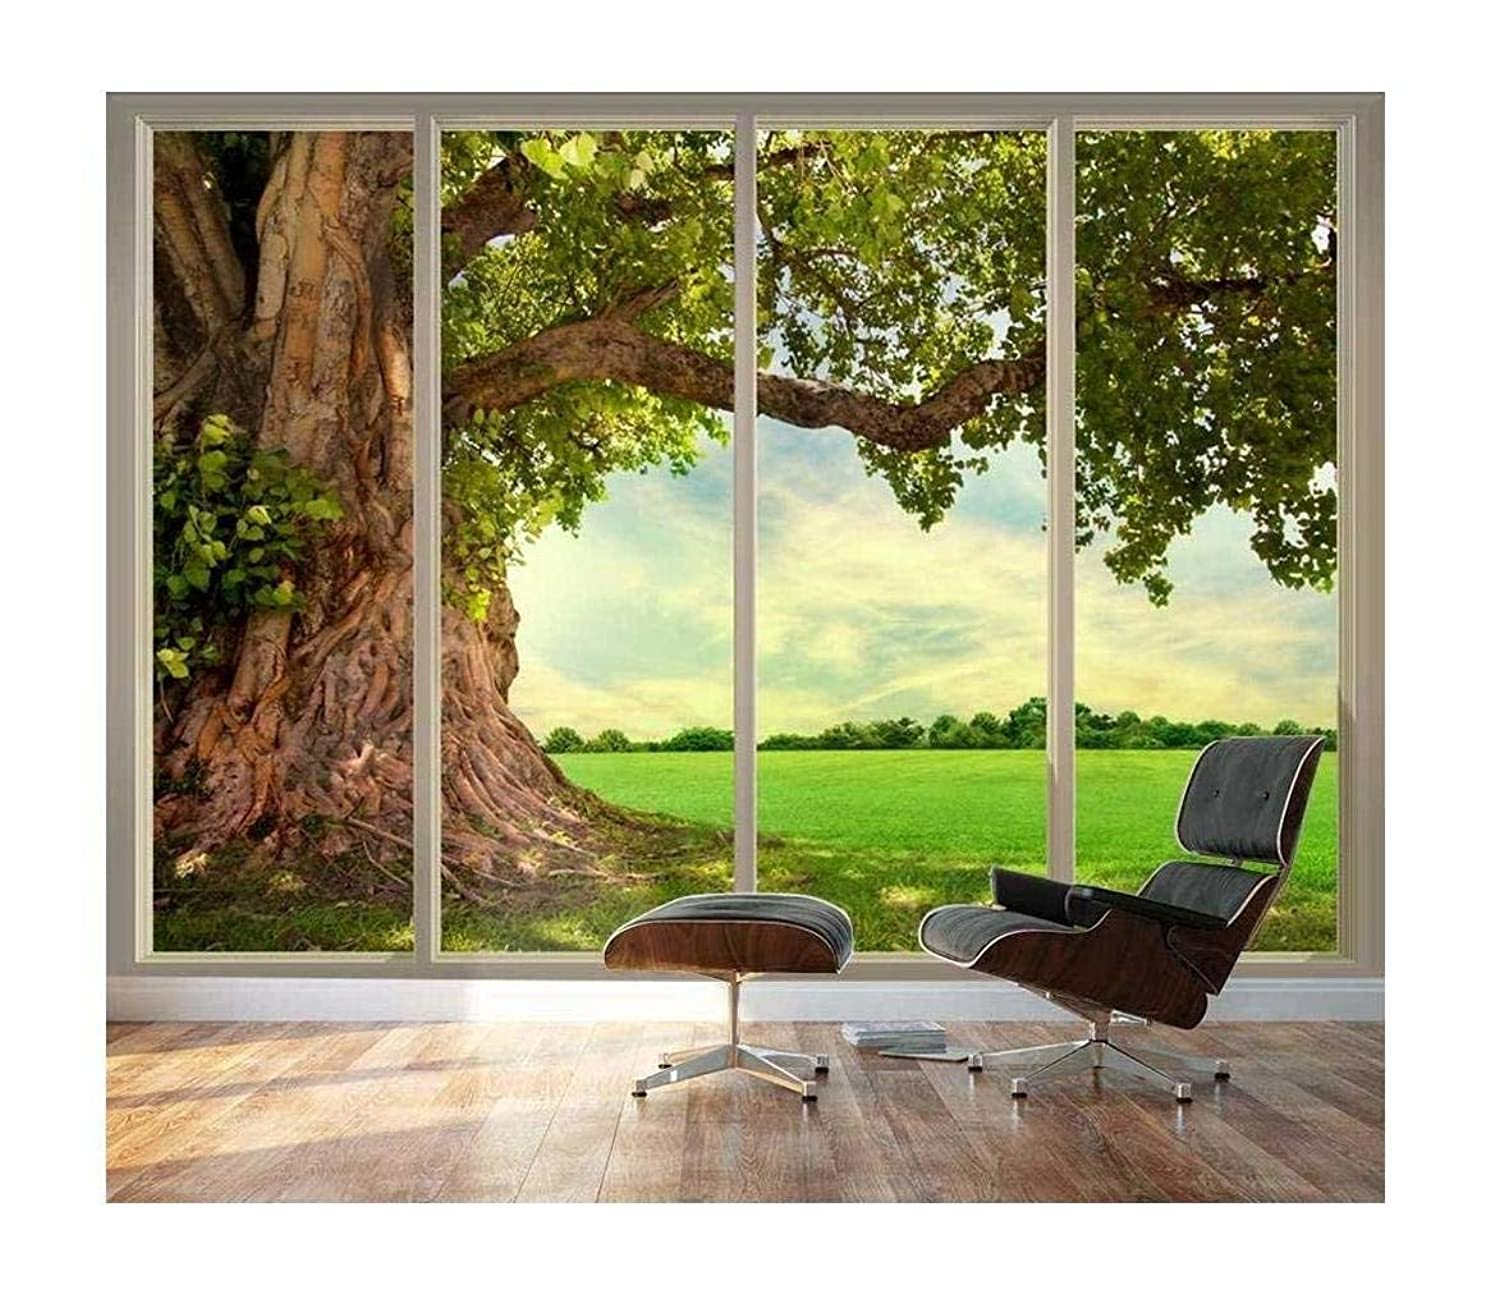 wall26 - Large Wall Mural - Old Tree and Meadow Seen Through Sliding Glass Doors | 3D Visual Effect Self-Adhesive Vinyl Wallpaper/Removable Modern Decorating Wall Art - 100